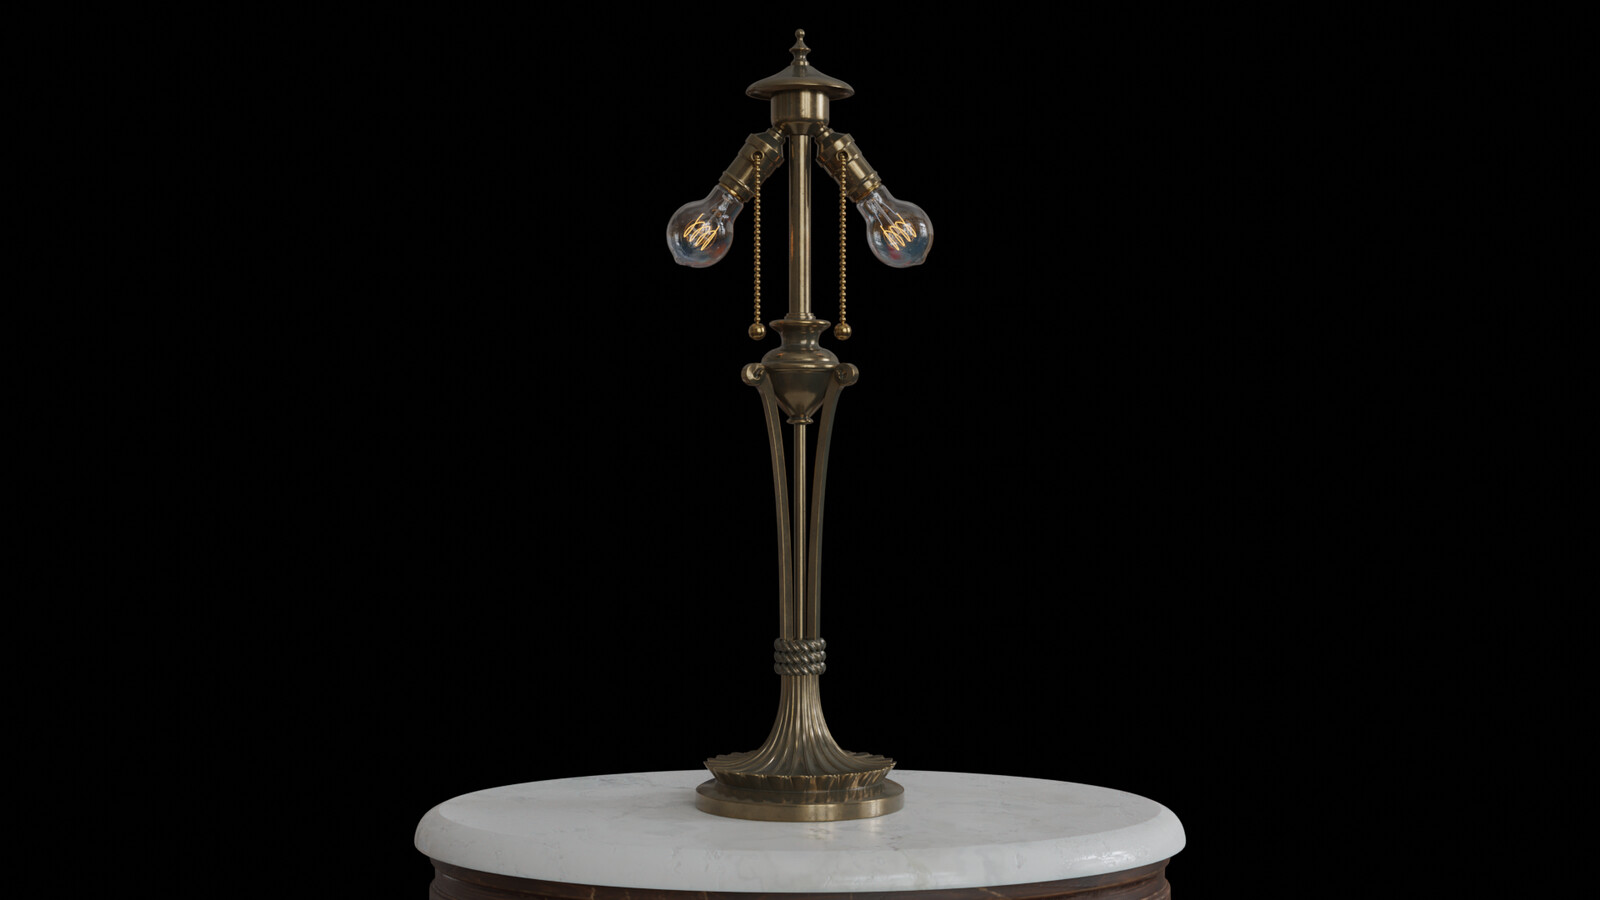 This shot shows off the detail of the brass lamp without it's shade down to the pull chains.  The light bulbs are from my antique light bulbs set found in my asset store and Artstation shop. https://artofkarlb.com/store